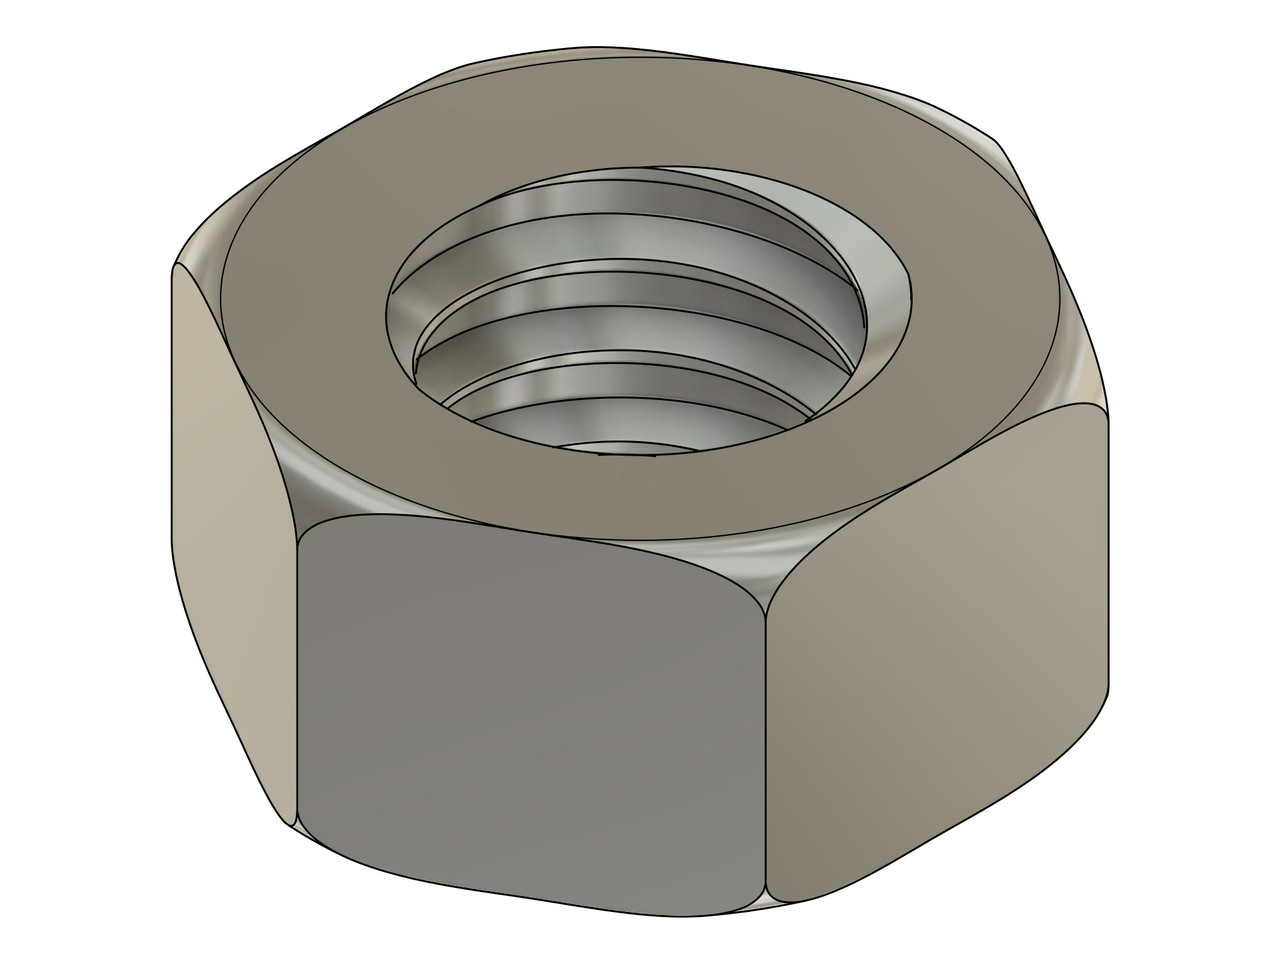 """Machined Hex Nut Thread Metric Standard M1.4 (1.40 UNM) Pitch .30mm ACF (across the flats) 2.25mm / .089"""" Material Stainless Steel, Part Finish Color """"Silver"""" Price is for 100 count package"""